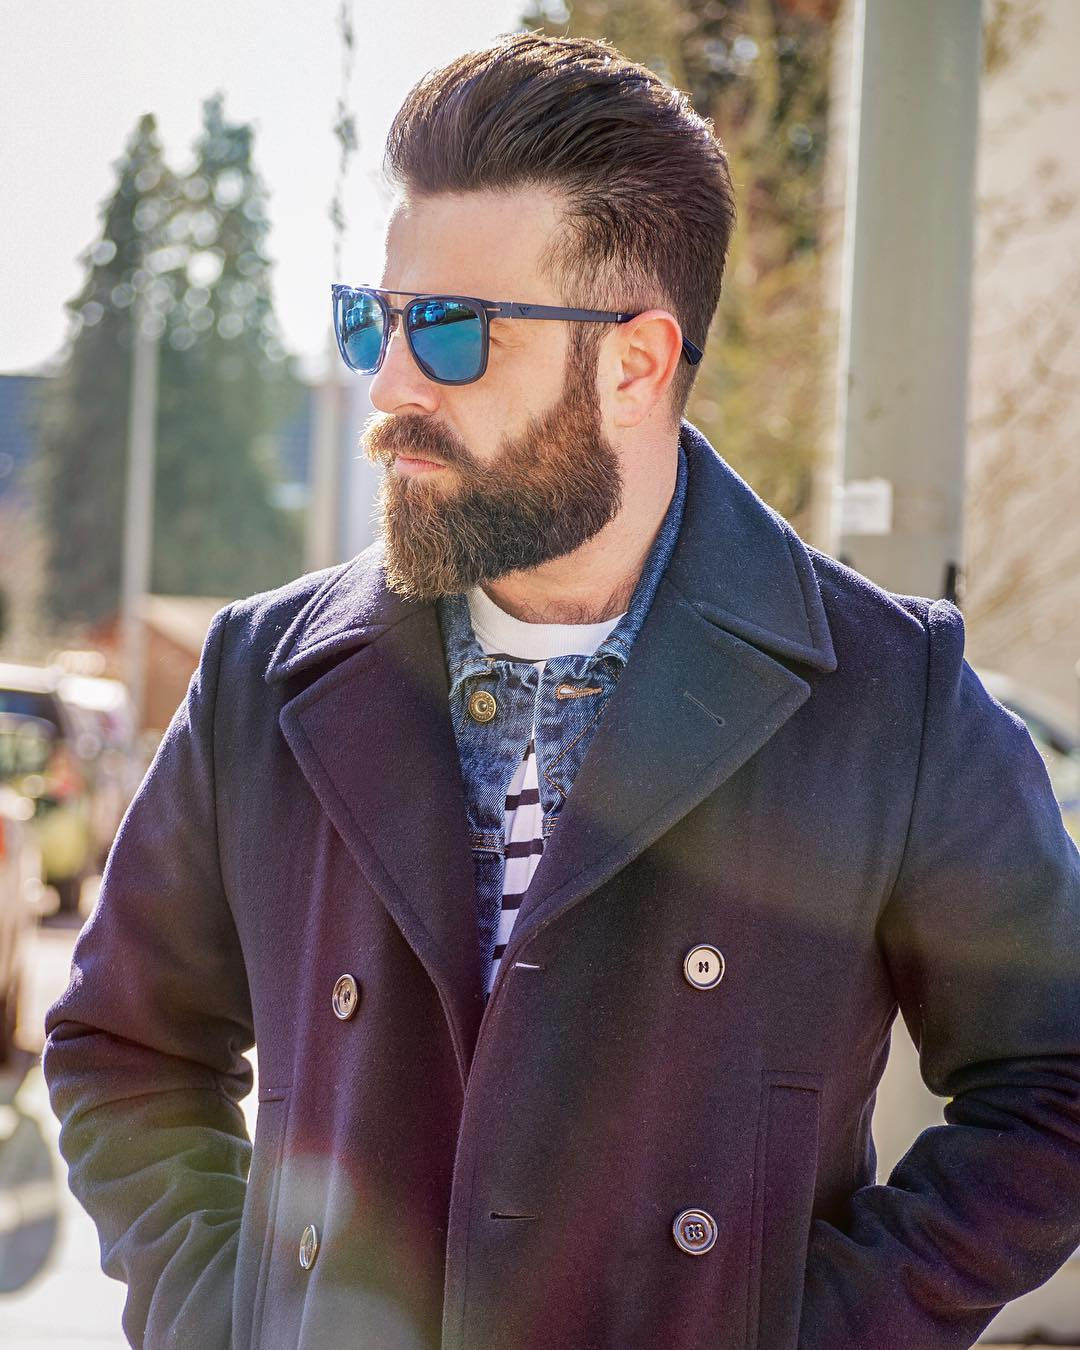 Hipster Hairstyles For Men - Mens Hairstyle 2020